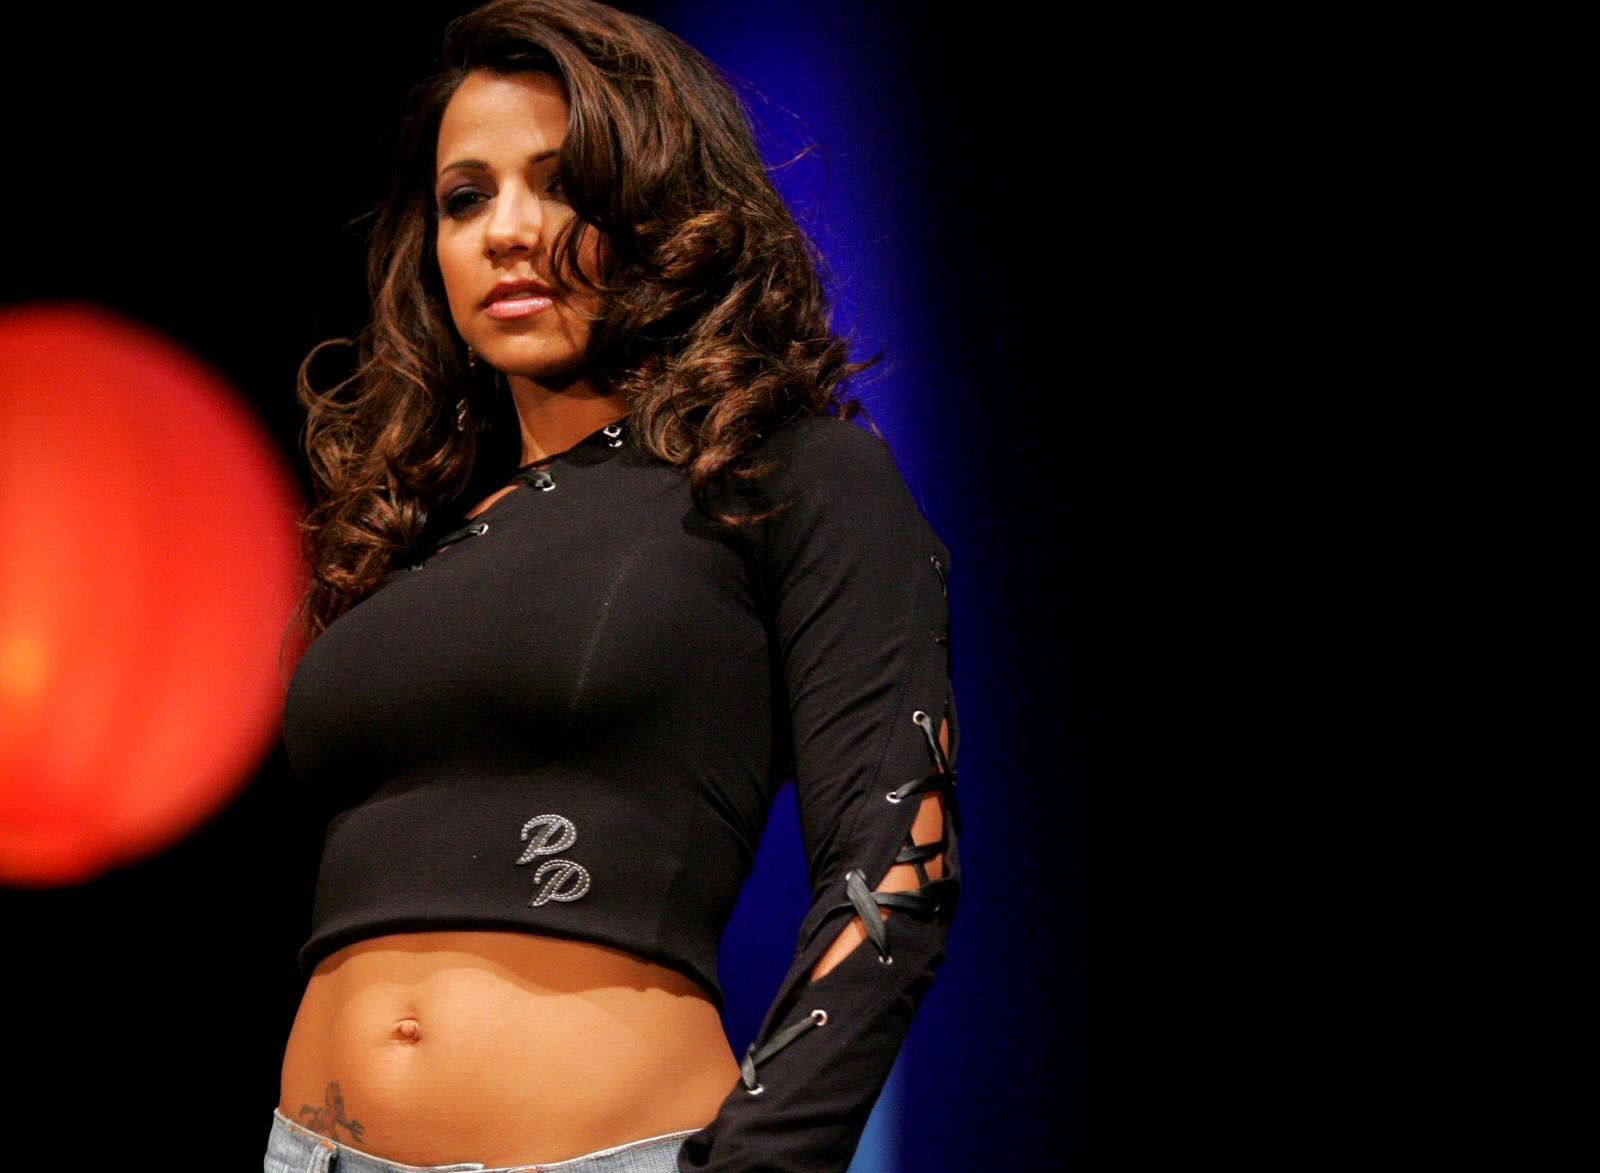 Vida Guerra attends the 19th annual Latin GRAMMY Awards at MGM Grand News Photo - Getty Images